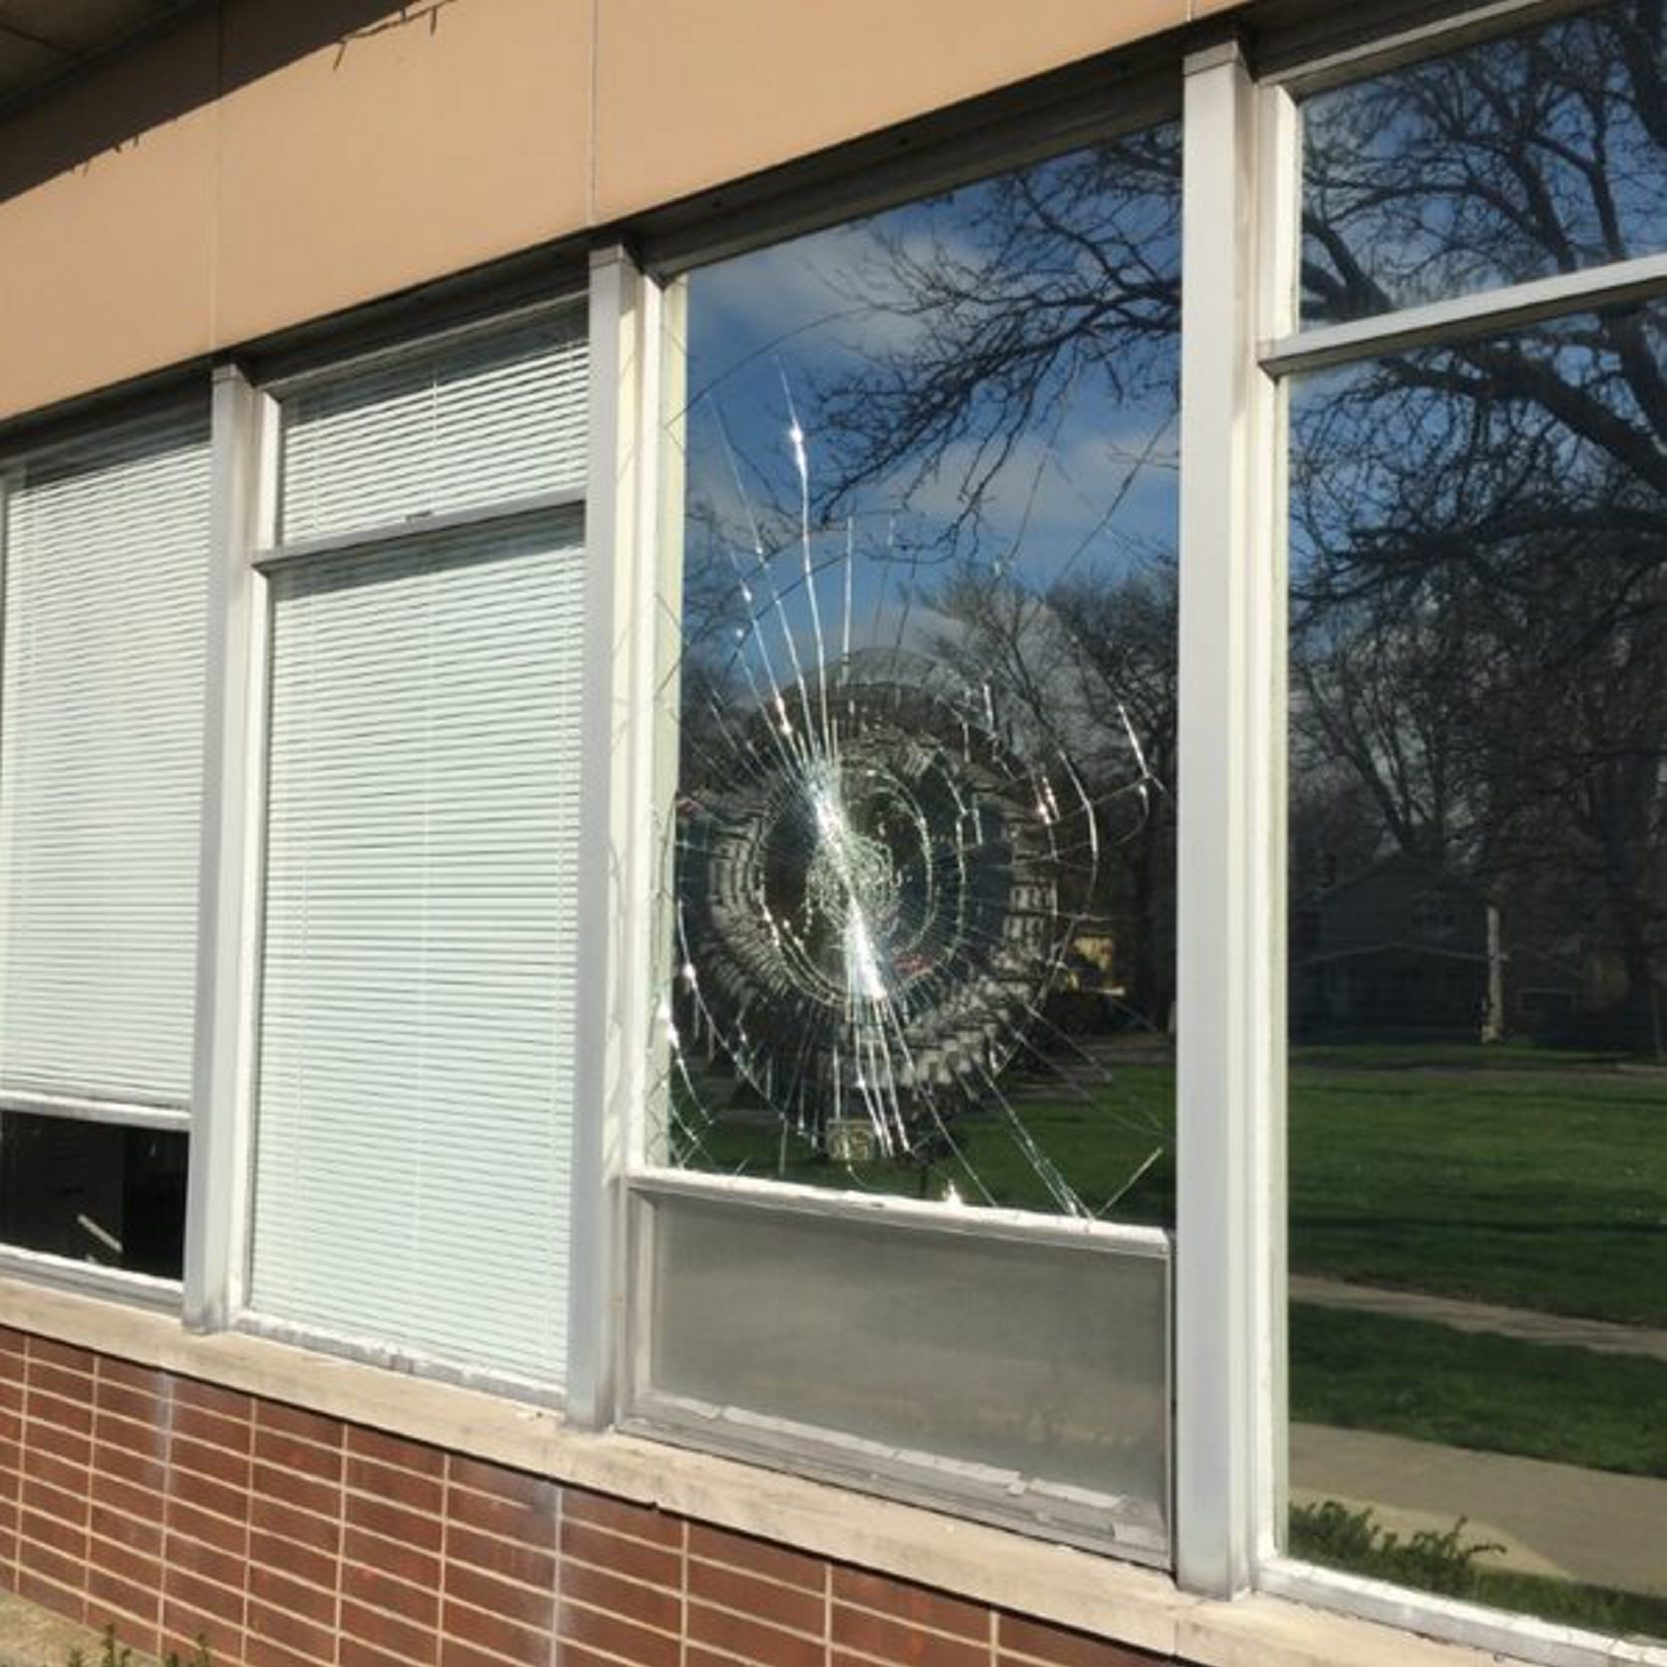 Tough turkey with window on the world takes Tonawanda police by surprise